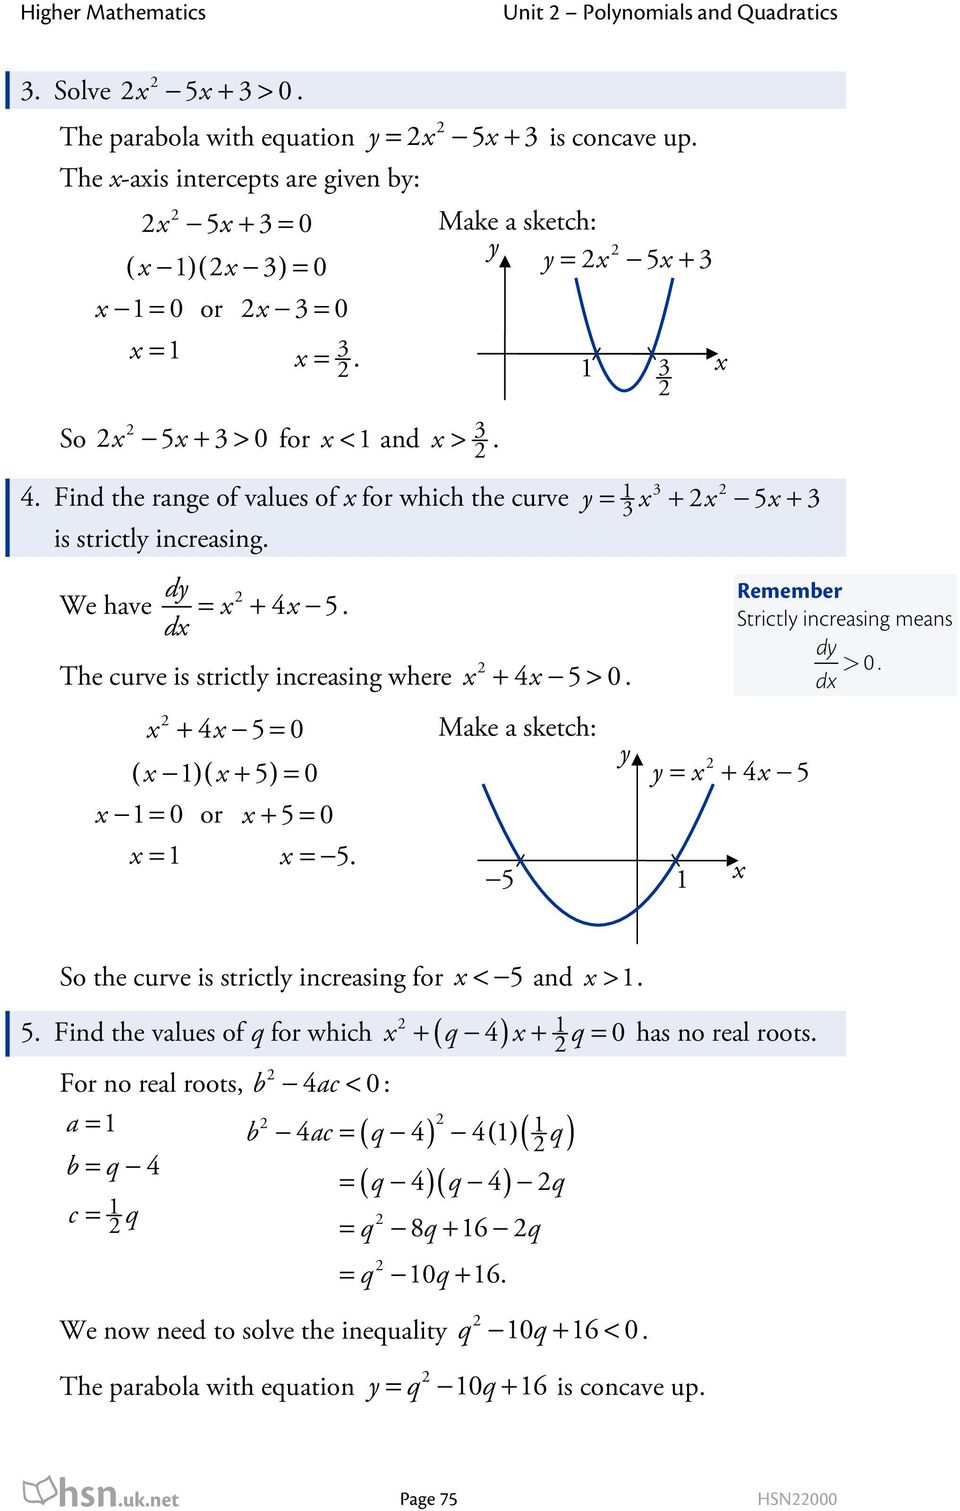 + 4 5 Make a sketch: ( 1)( + 5) 1 or + 5 = 1 = 5. 5 1 3 3 5 3 = + + 1 Remember Strictl increasing means d 0 d >. = + 4 5 So the curve is strictl increasing for < 5 and > 1. 5. Find the values of q for which ( ) For no real roots, b < 0 : a = 1 b = q 4 4 1 1 q b = q 4 = ( q 4)( q 4) q c = 1 q = q 8q + 16 q + q 4 + 1 q has no real roots.